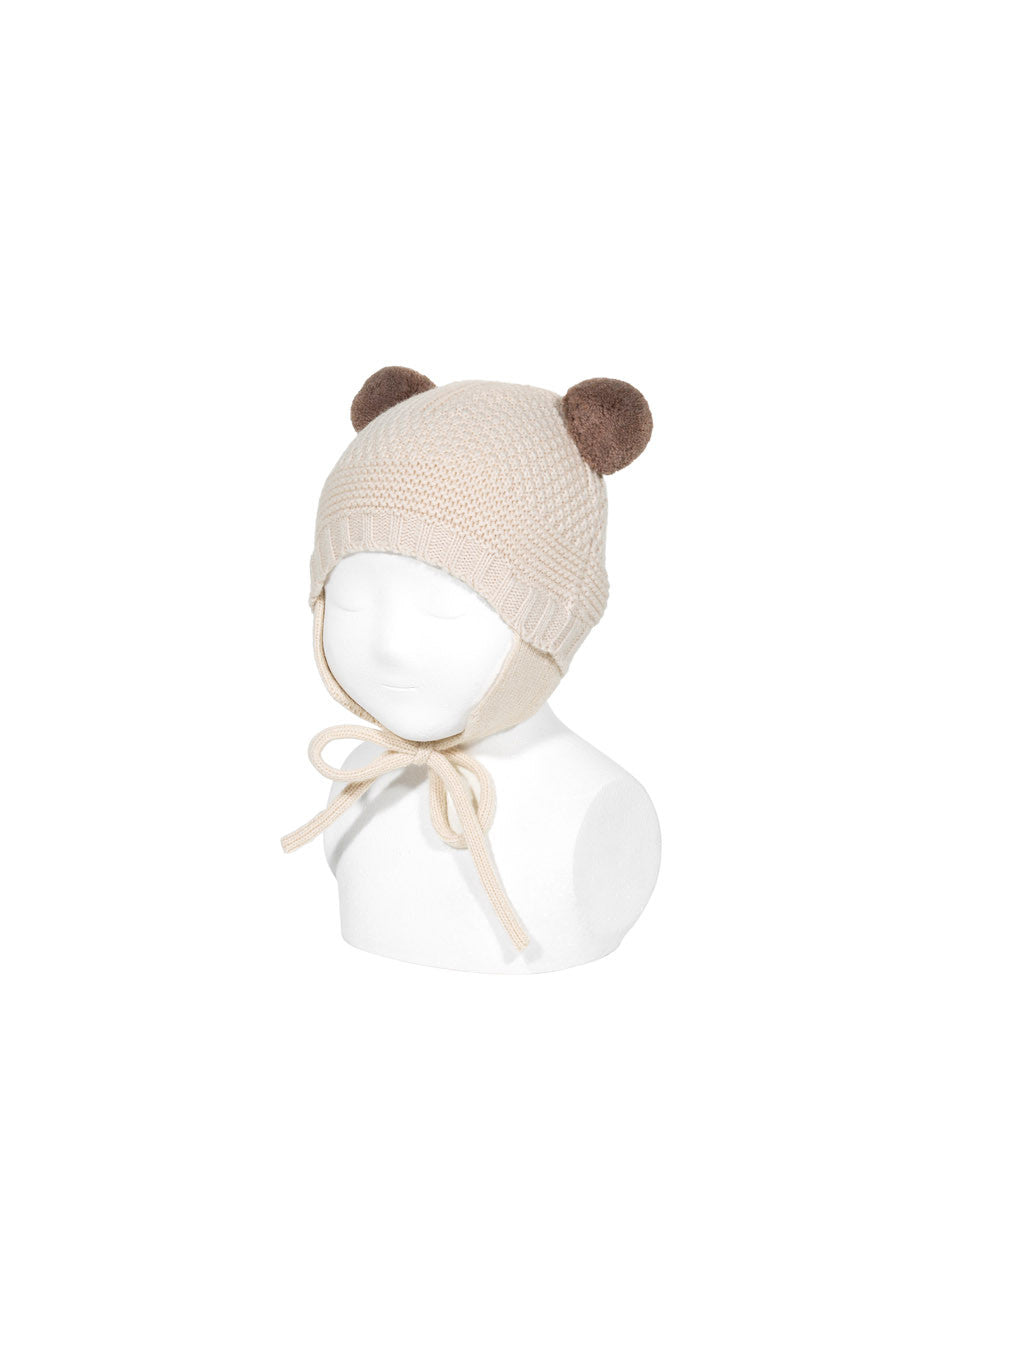 Sand Stitch Hat With Earflaps and Pompoms in Beige